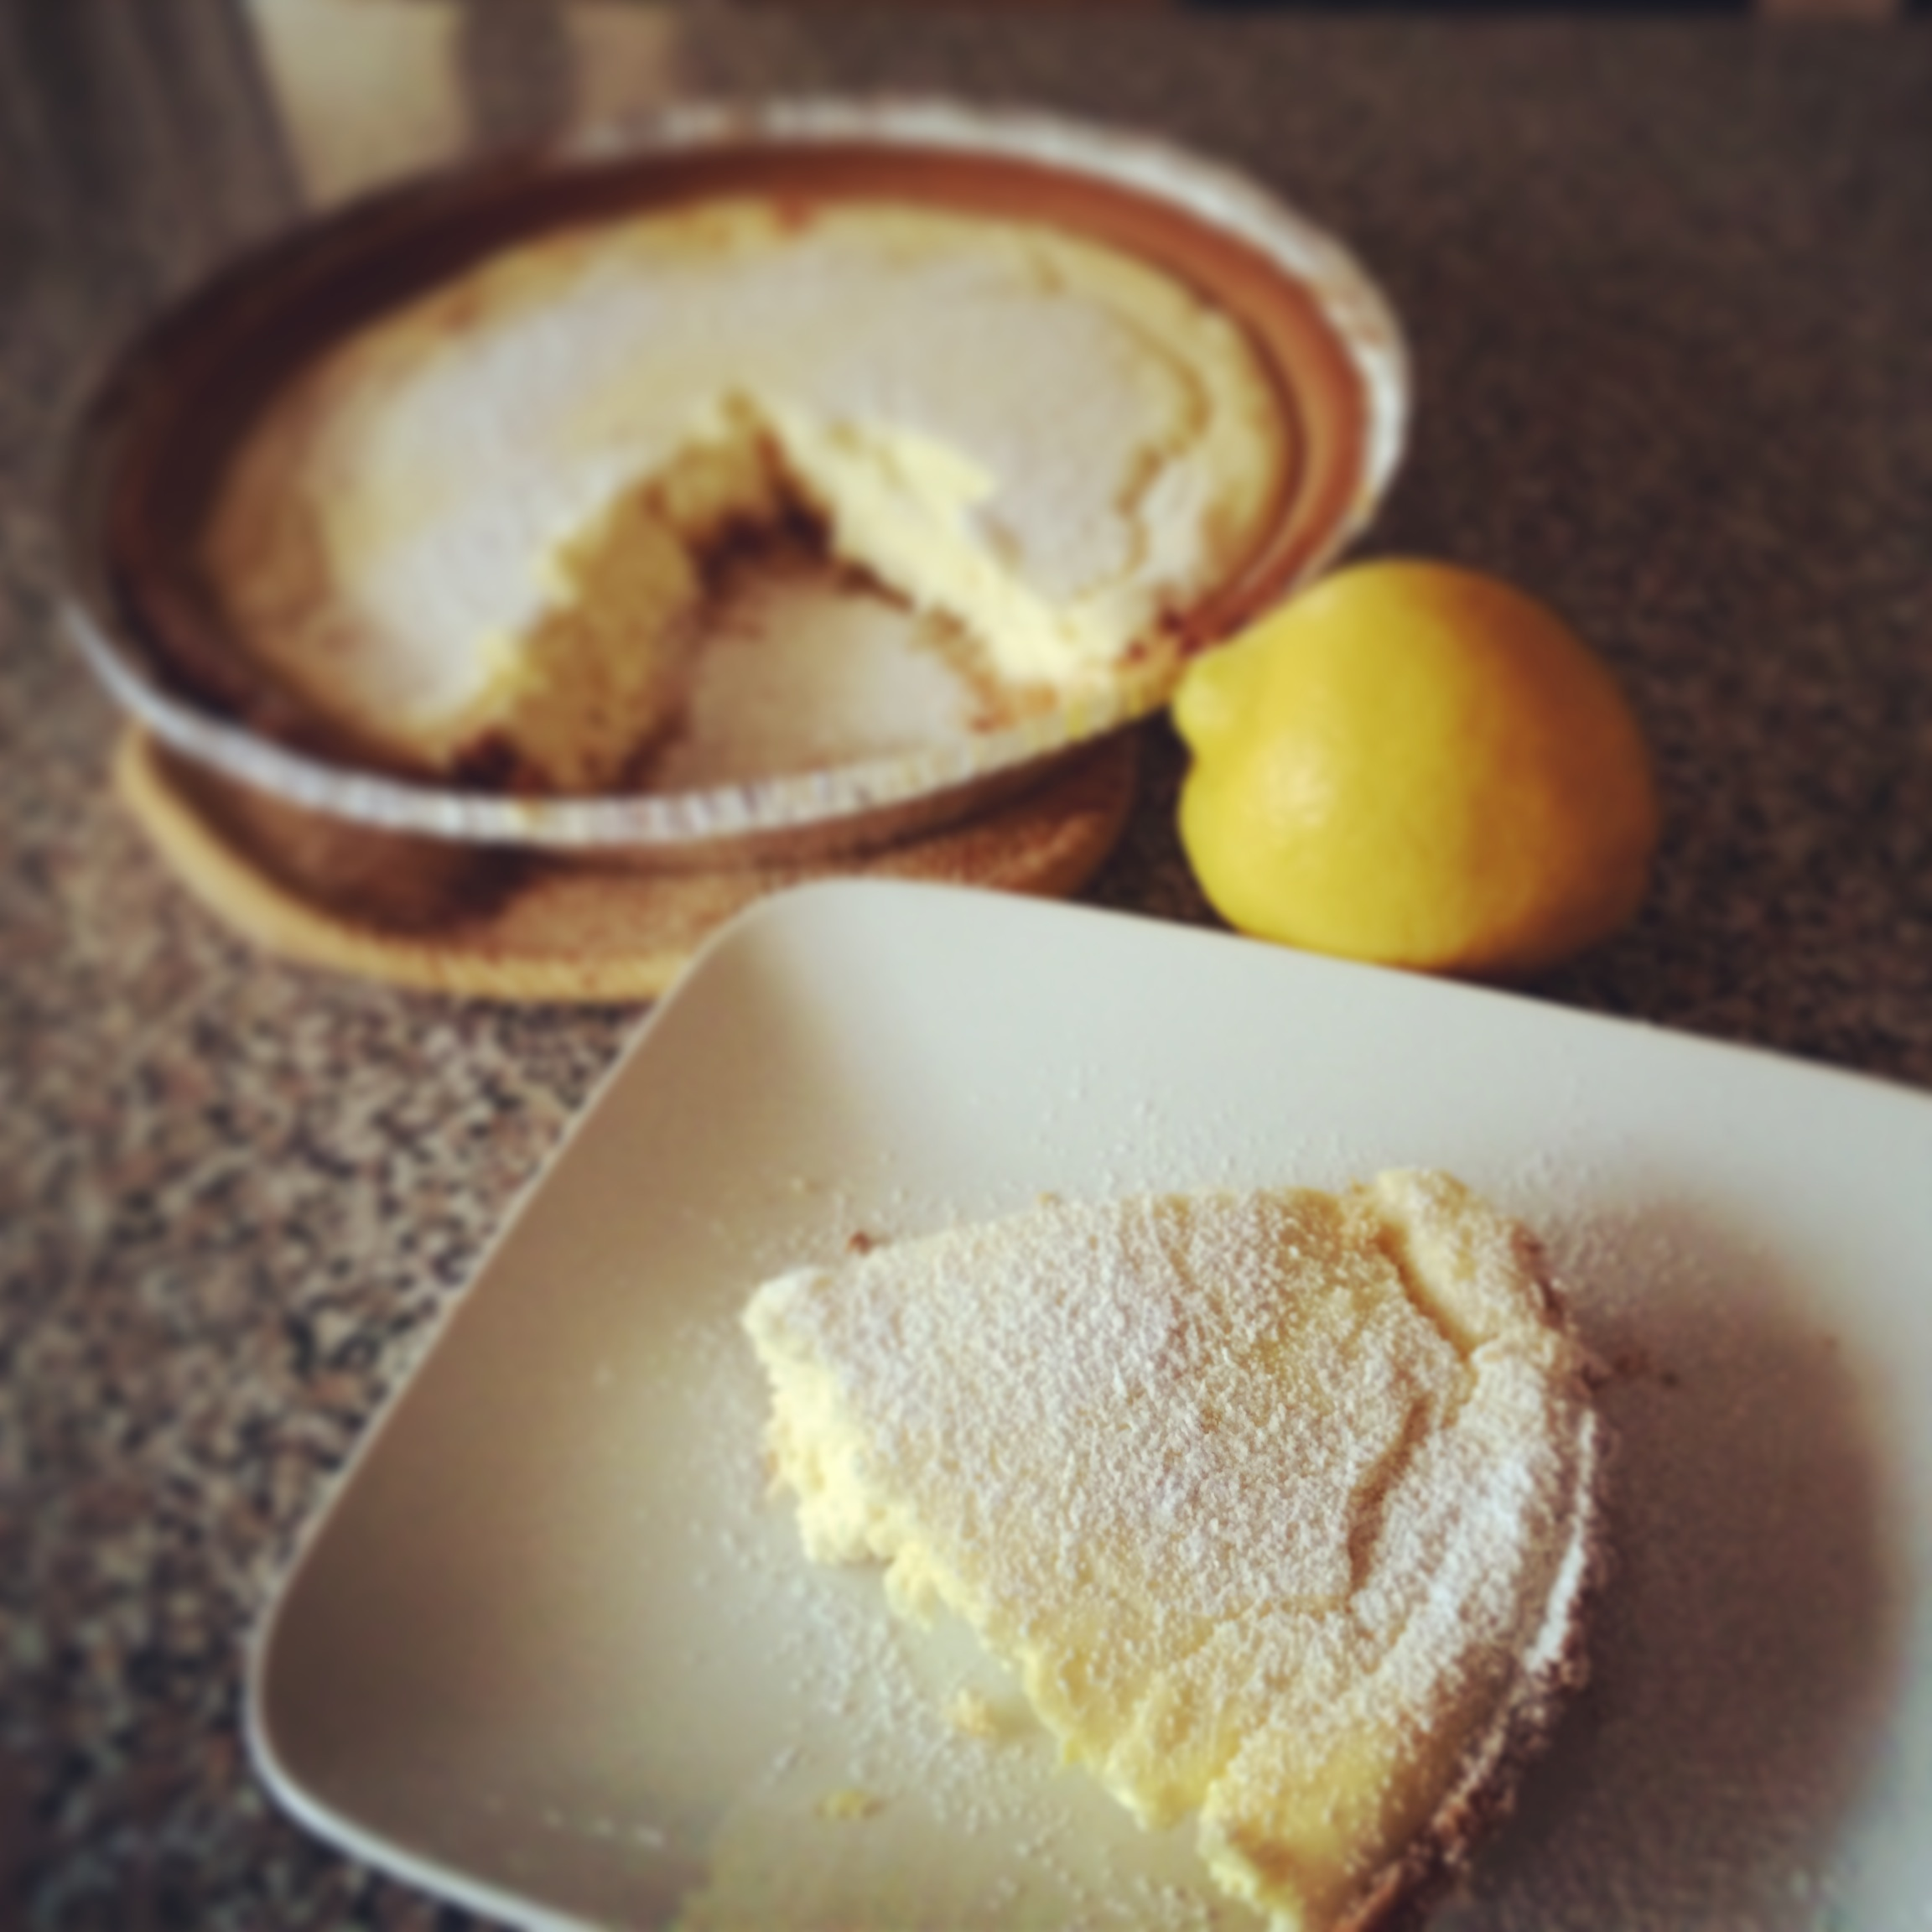 The Best Easy Cheesecake Recipe Iu0027ve Ever Made! This Lemon Cheesecake Is  Light